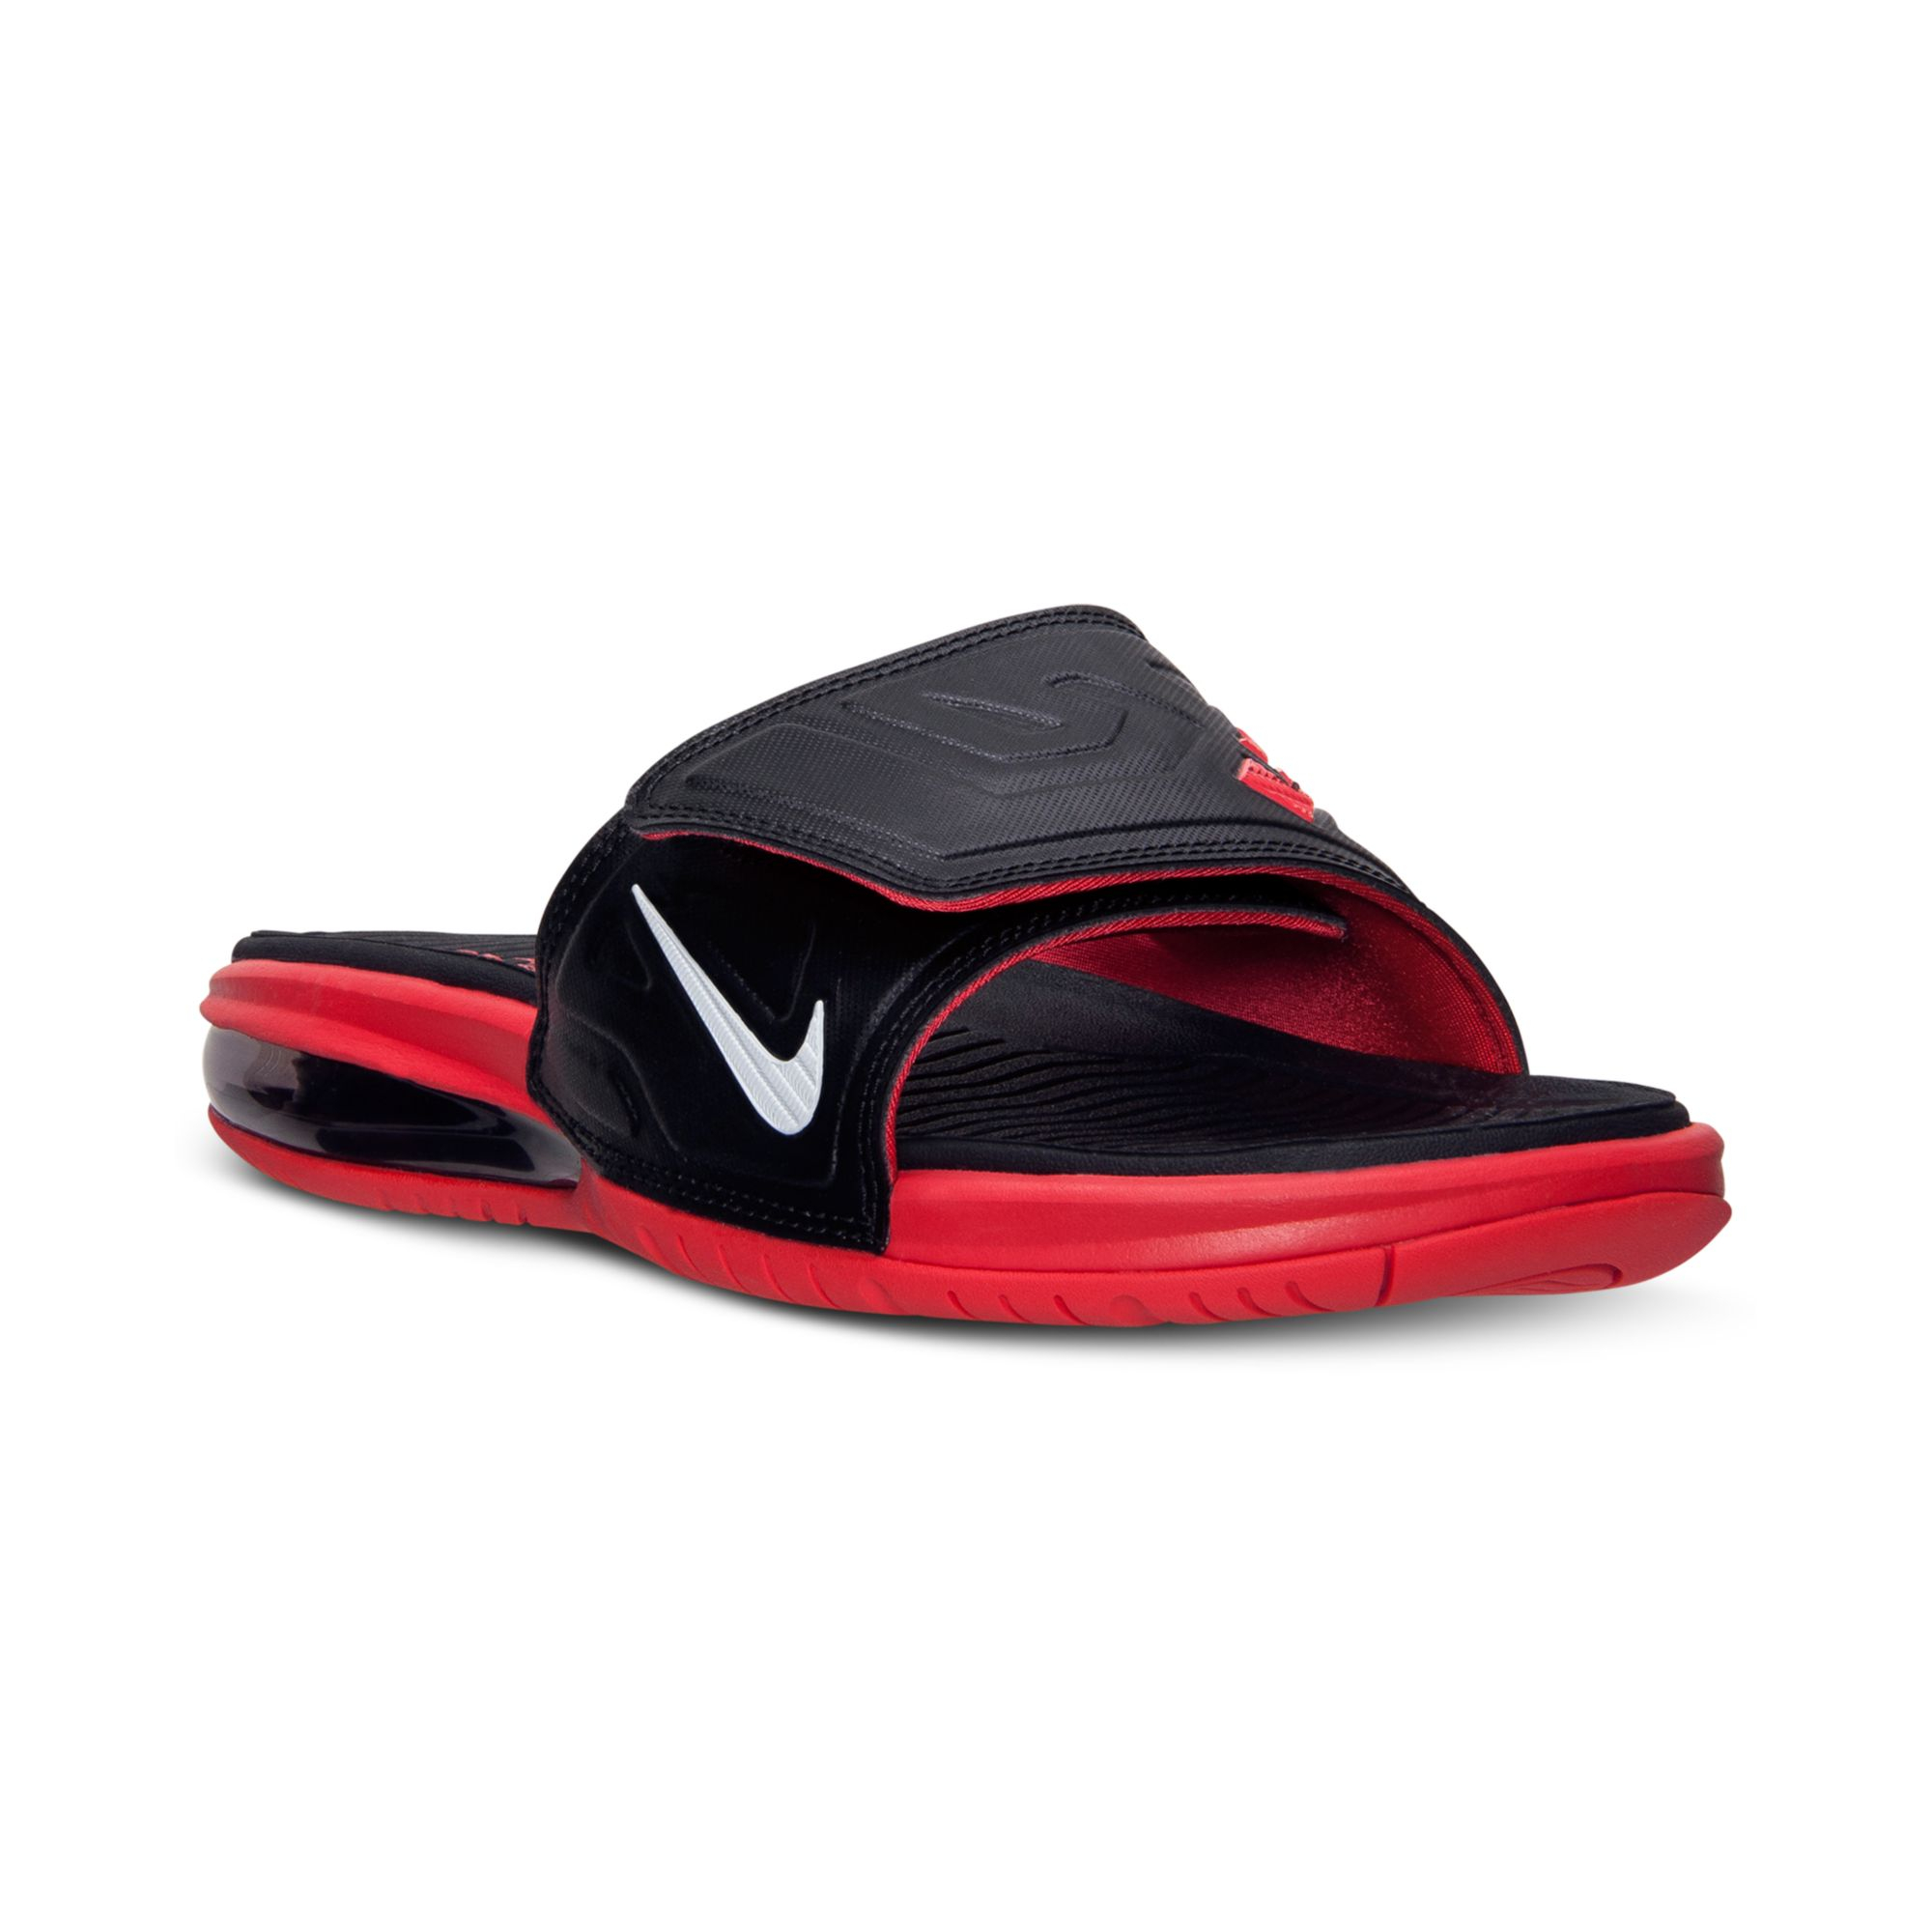 0fc40a457118 Lyst - Nike Mens Air Lebron 3 Elite Slide Sandals From Finish Line ...